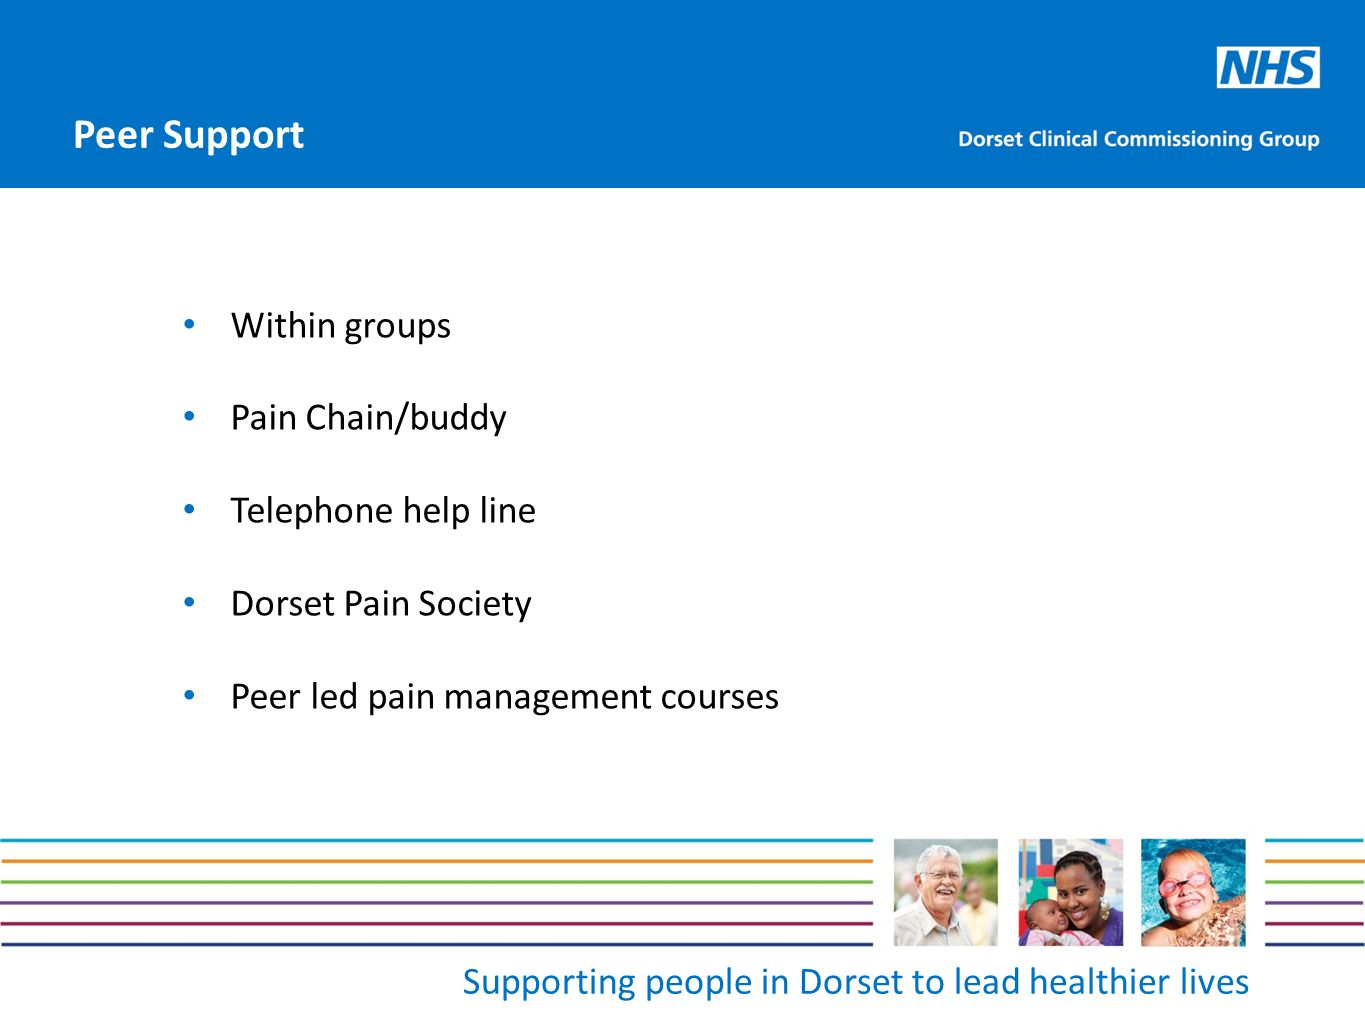 Supporting people in Dorset to lead healthier lives Within groups Pain Chain/buddy Telephone help line Dorset Pain Society Peer led pain management courses Peer Support